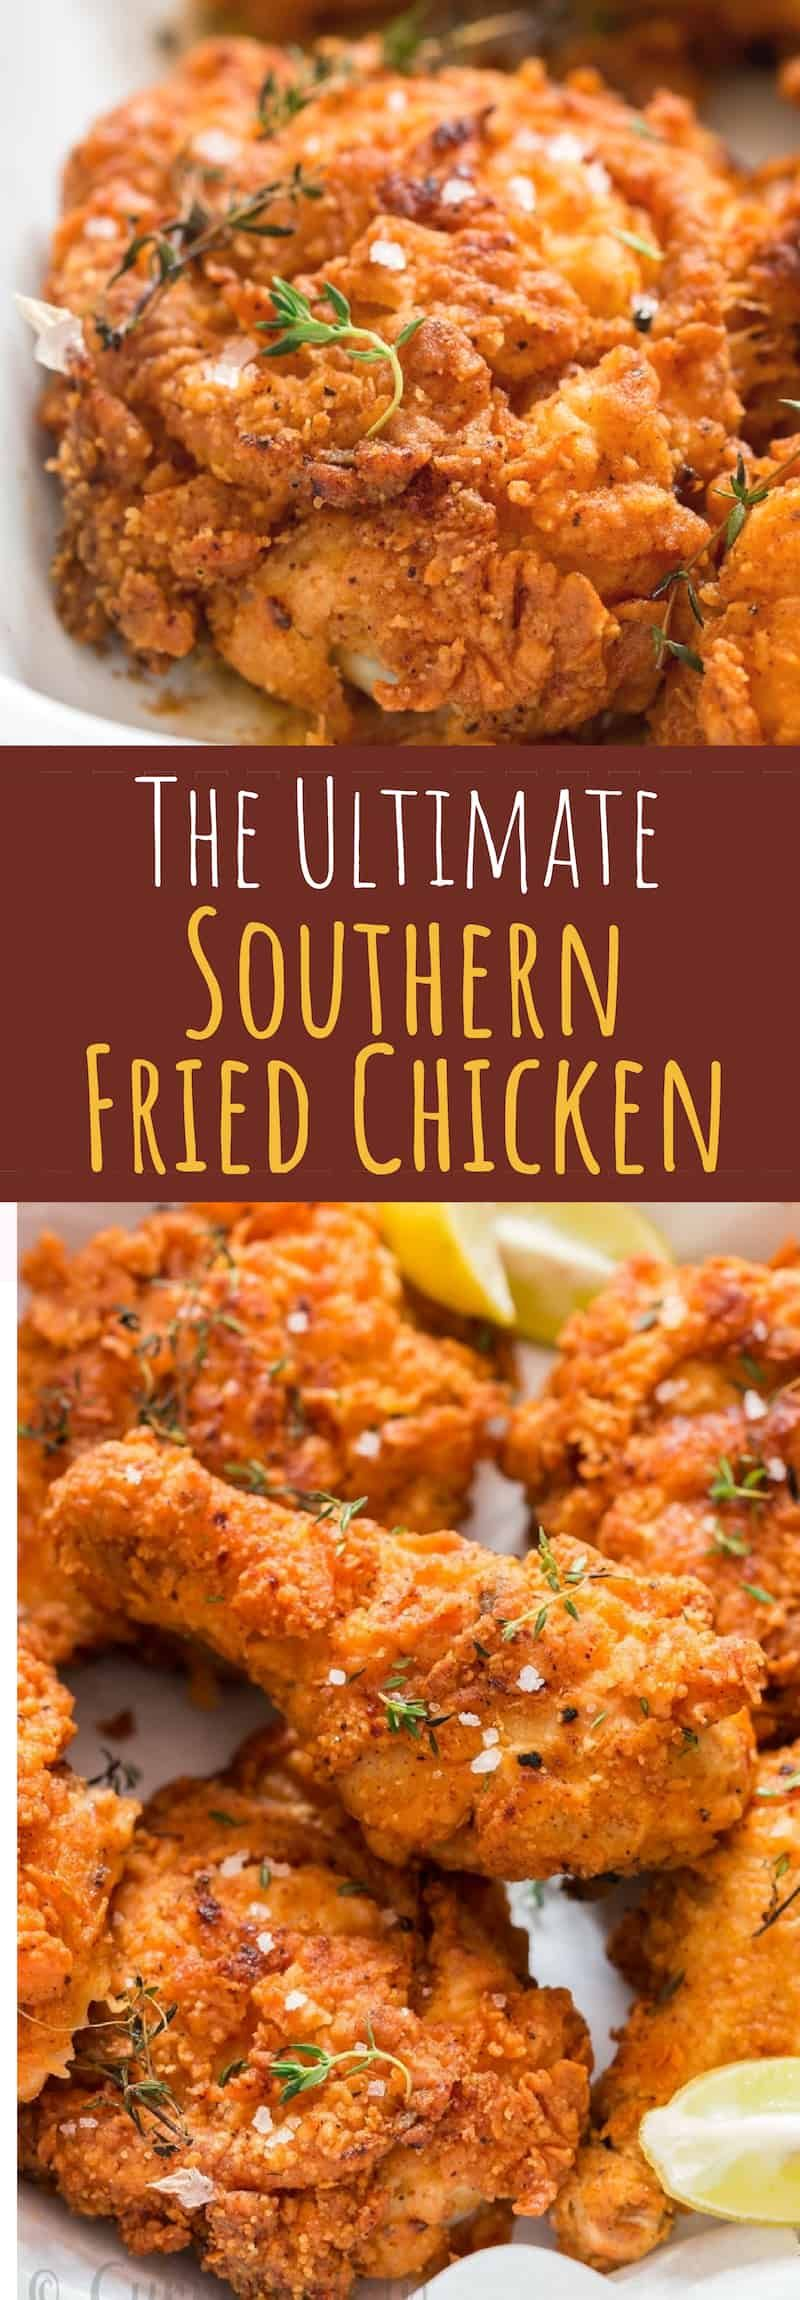 Photo of Ultimate Southern Fried Chicken